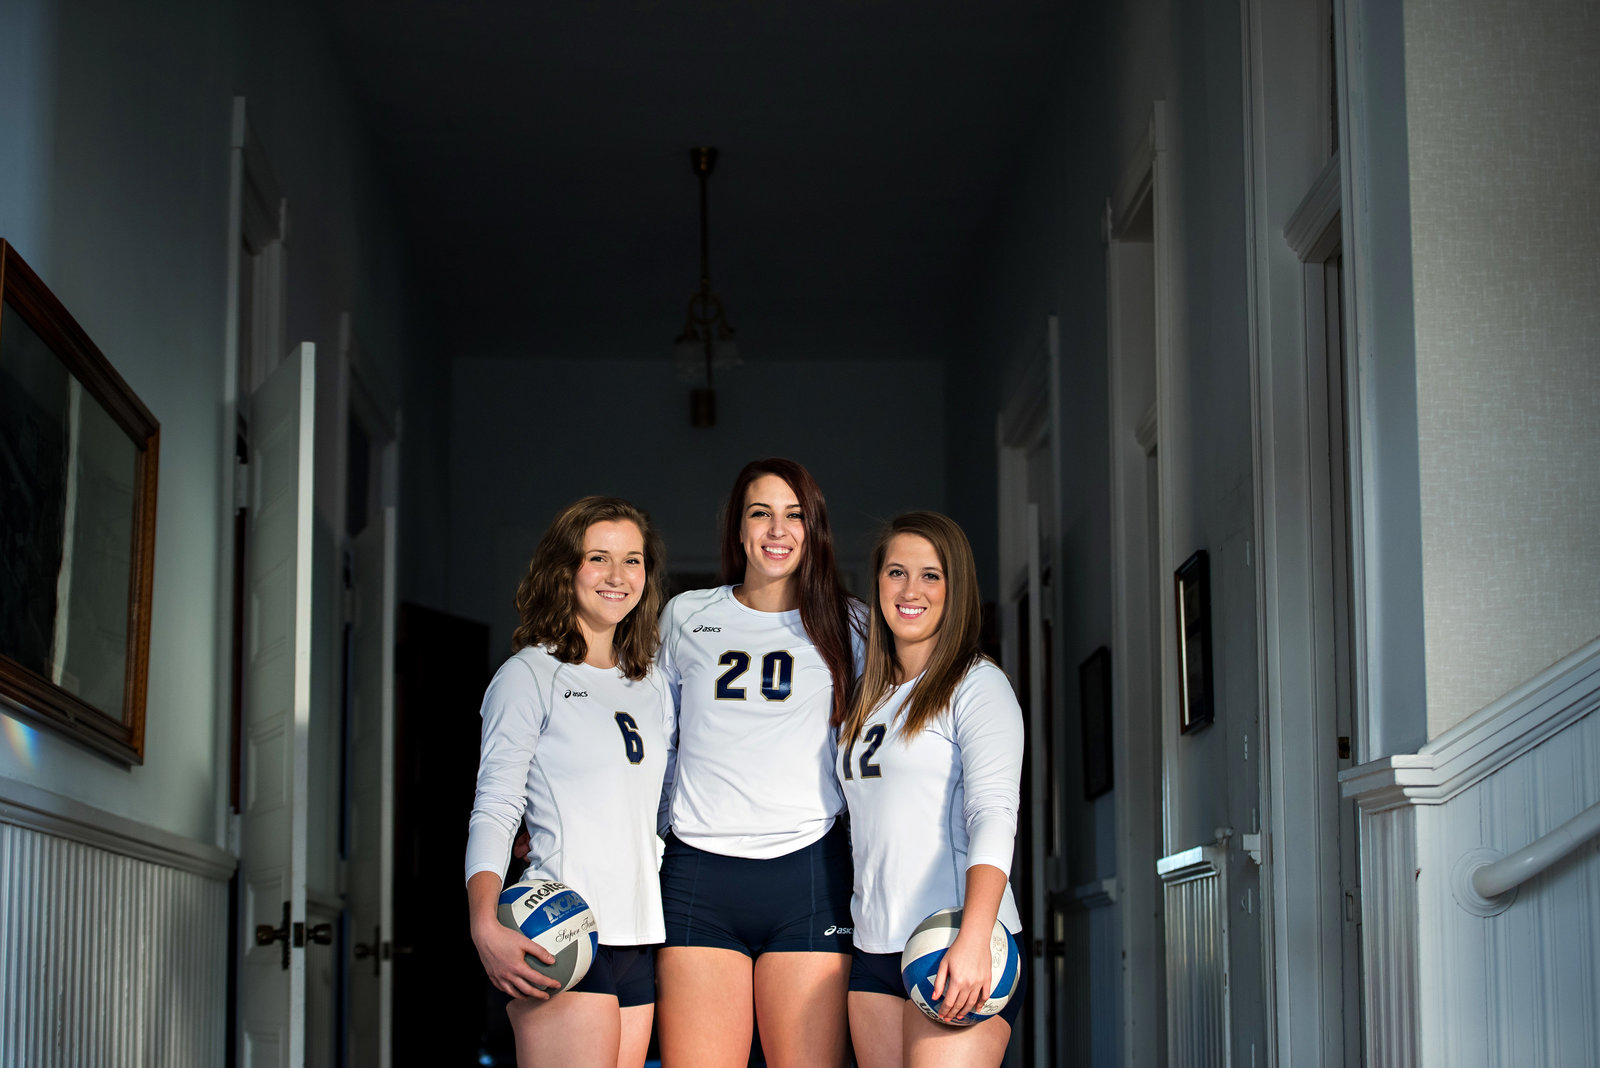 College volley ball athletes pose.